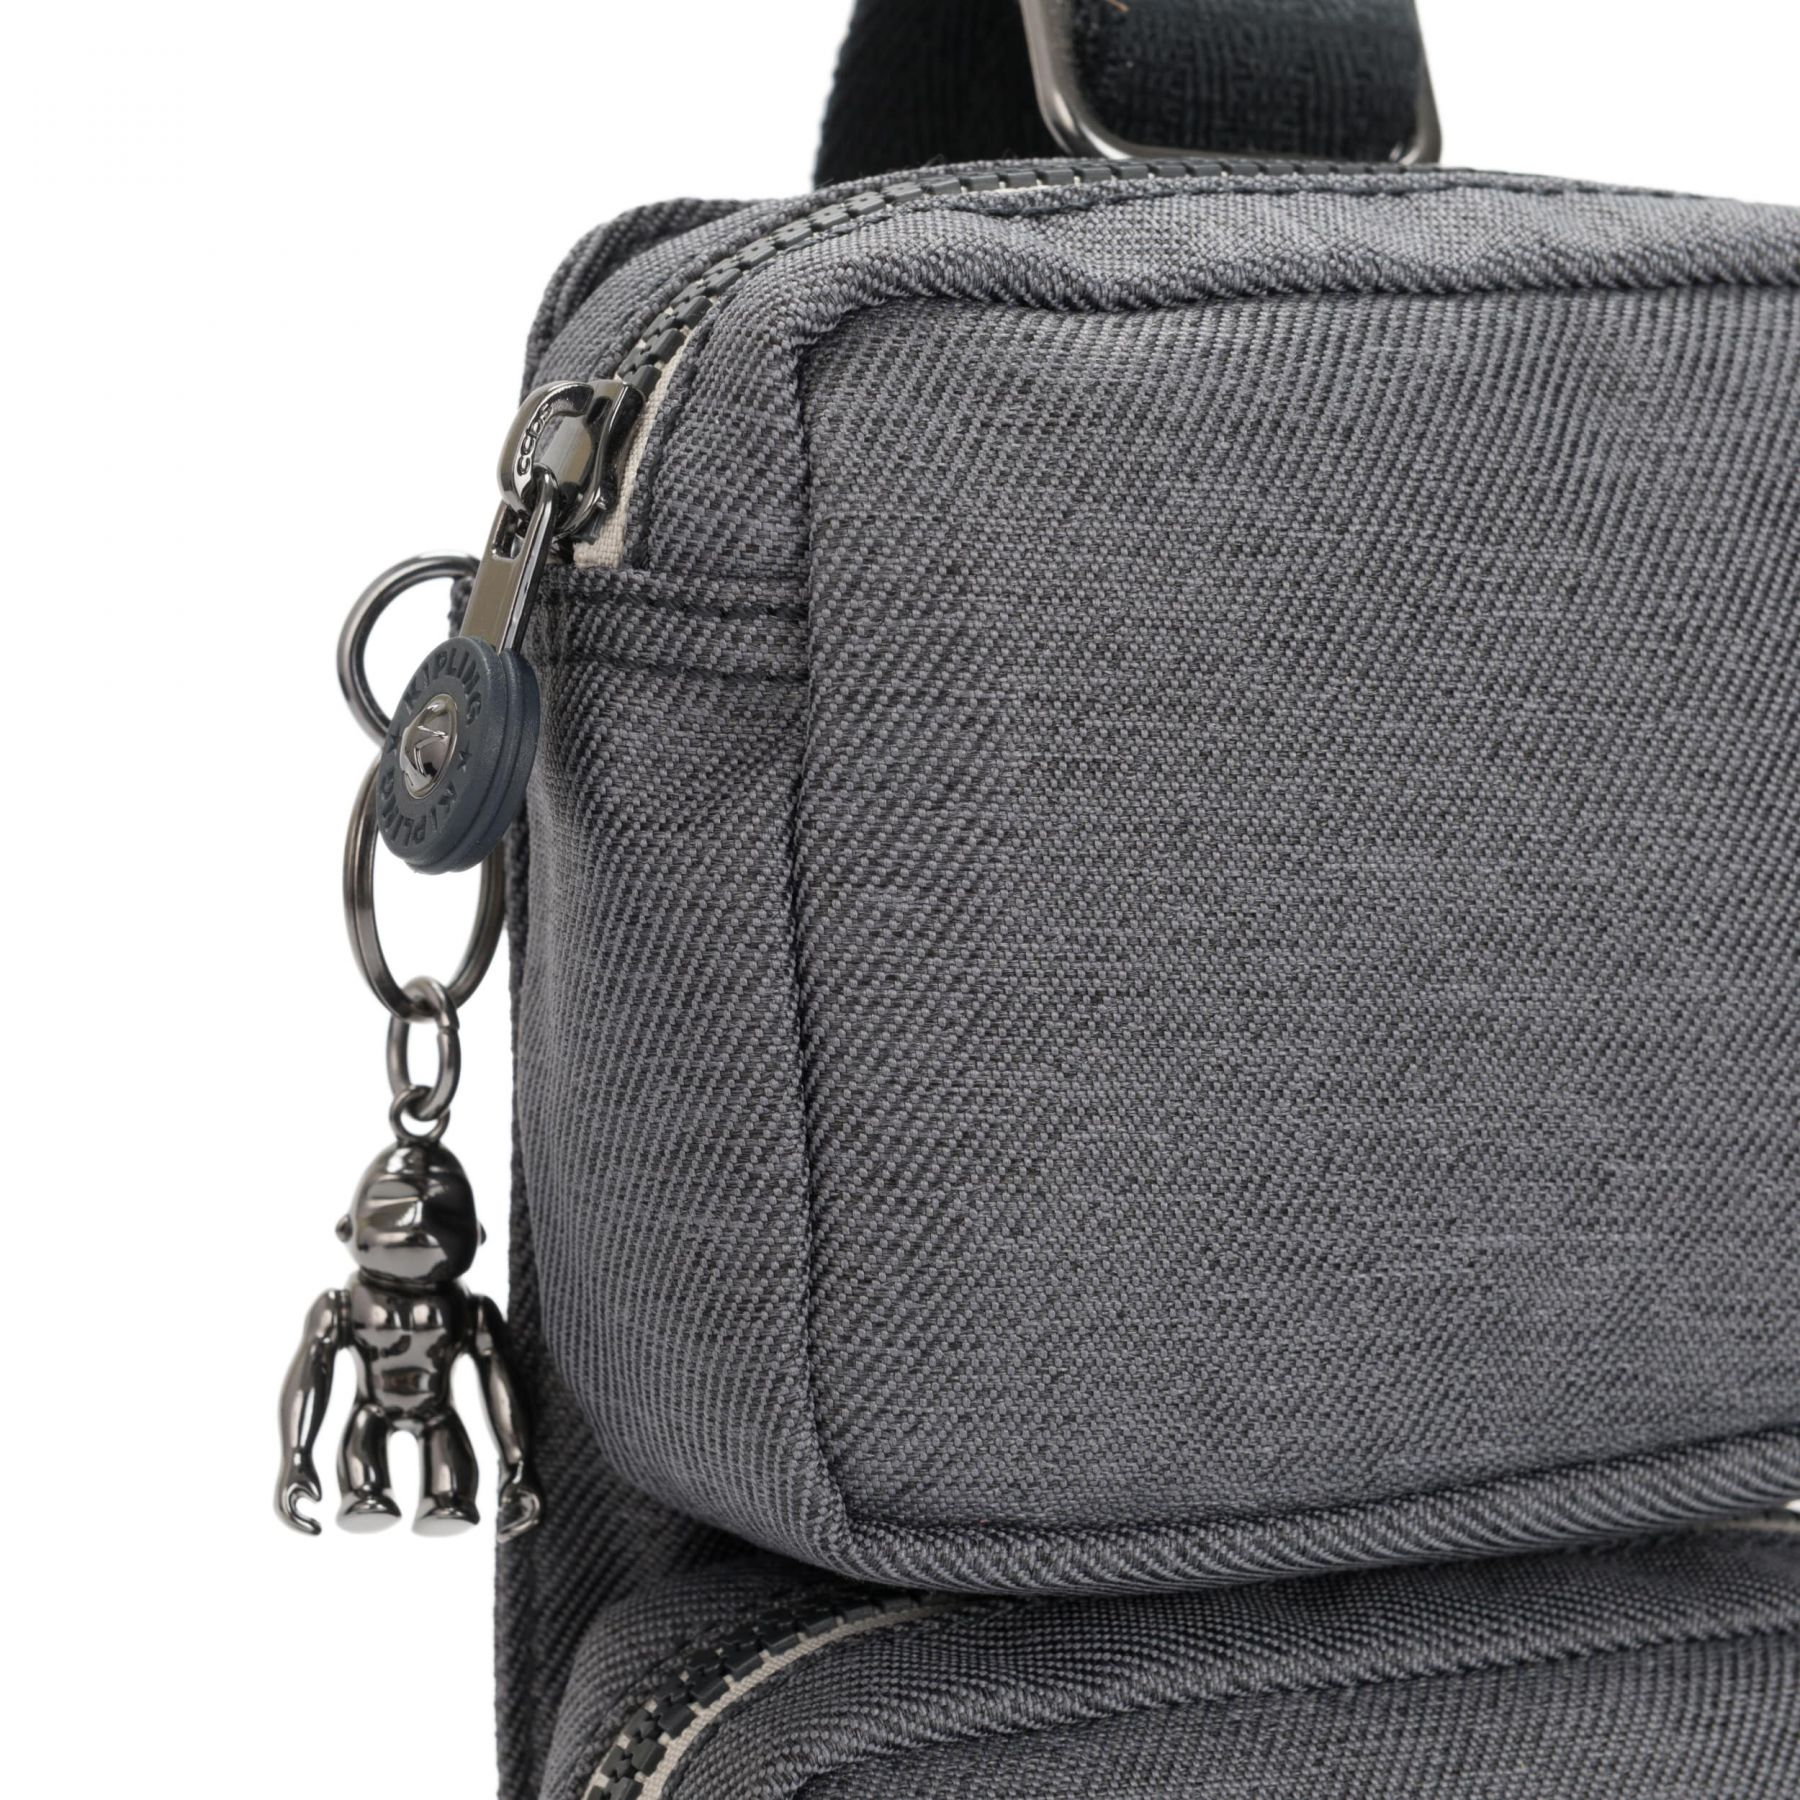 OVANDO Latest Shoulder Bags by Kipling - view 5